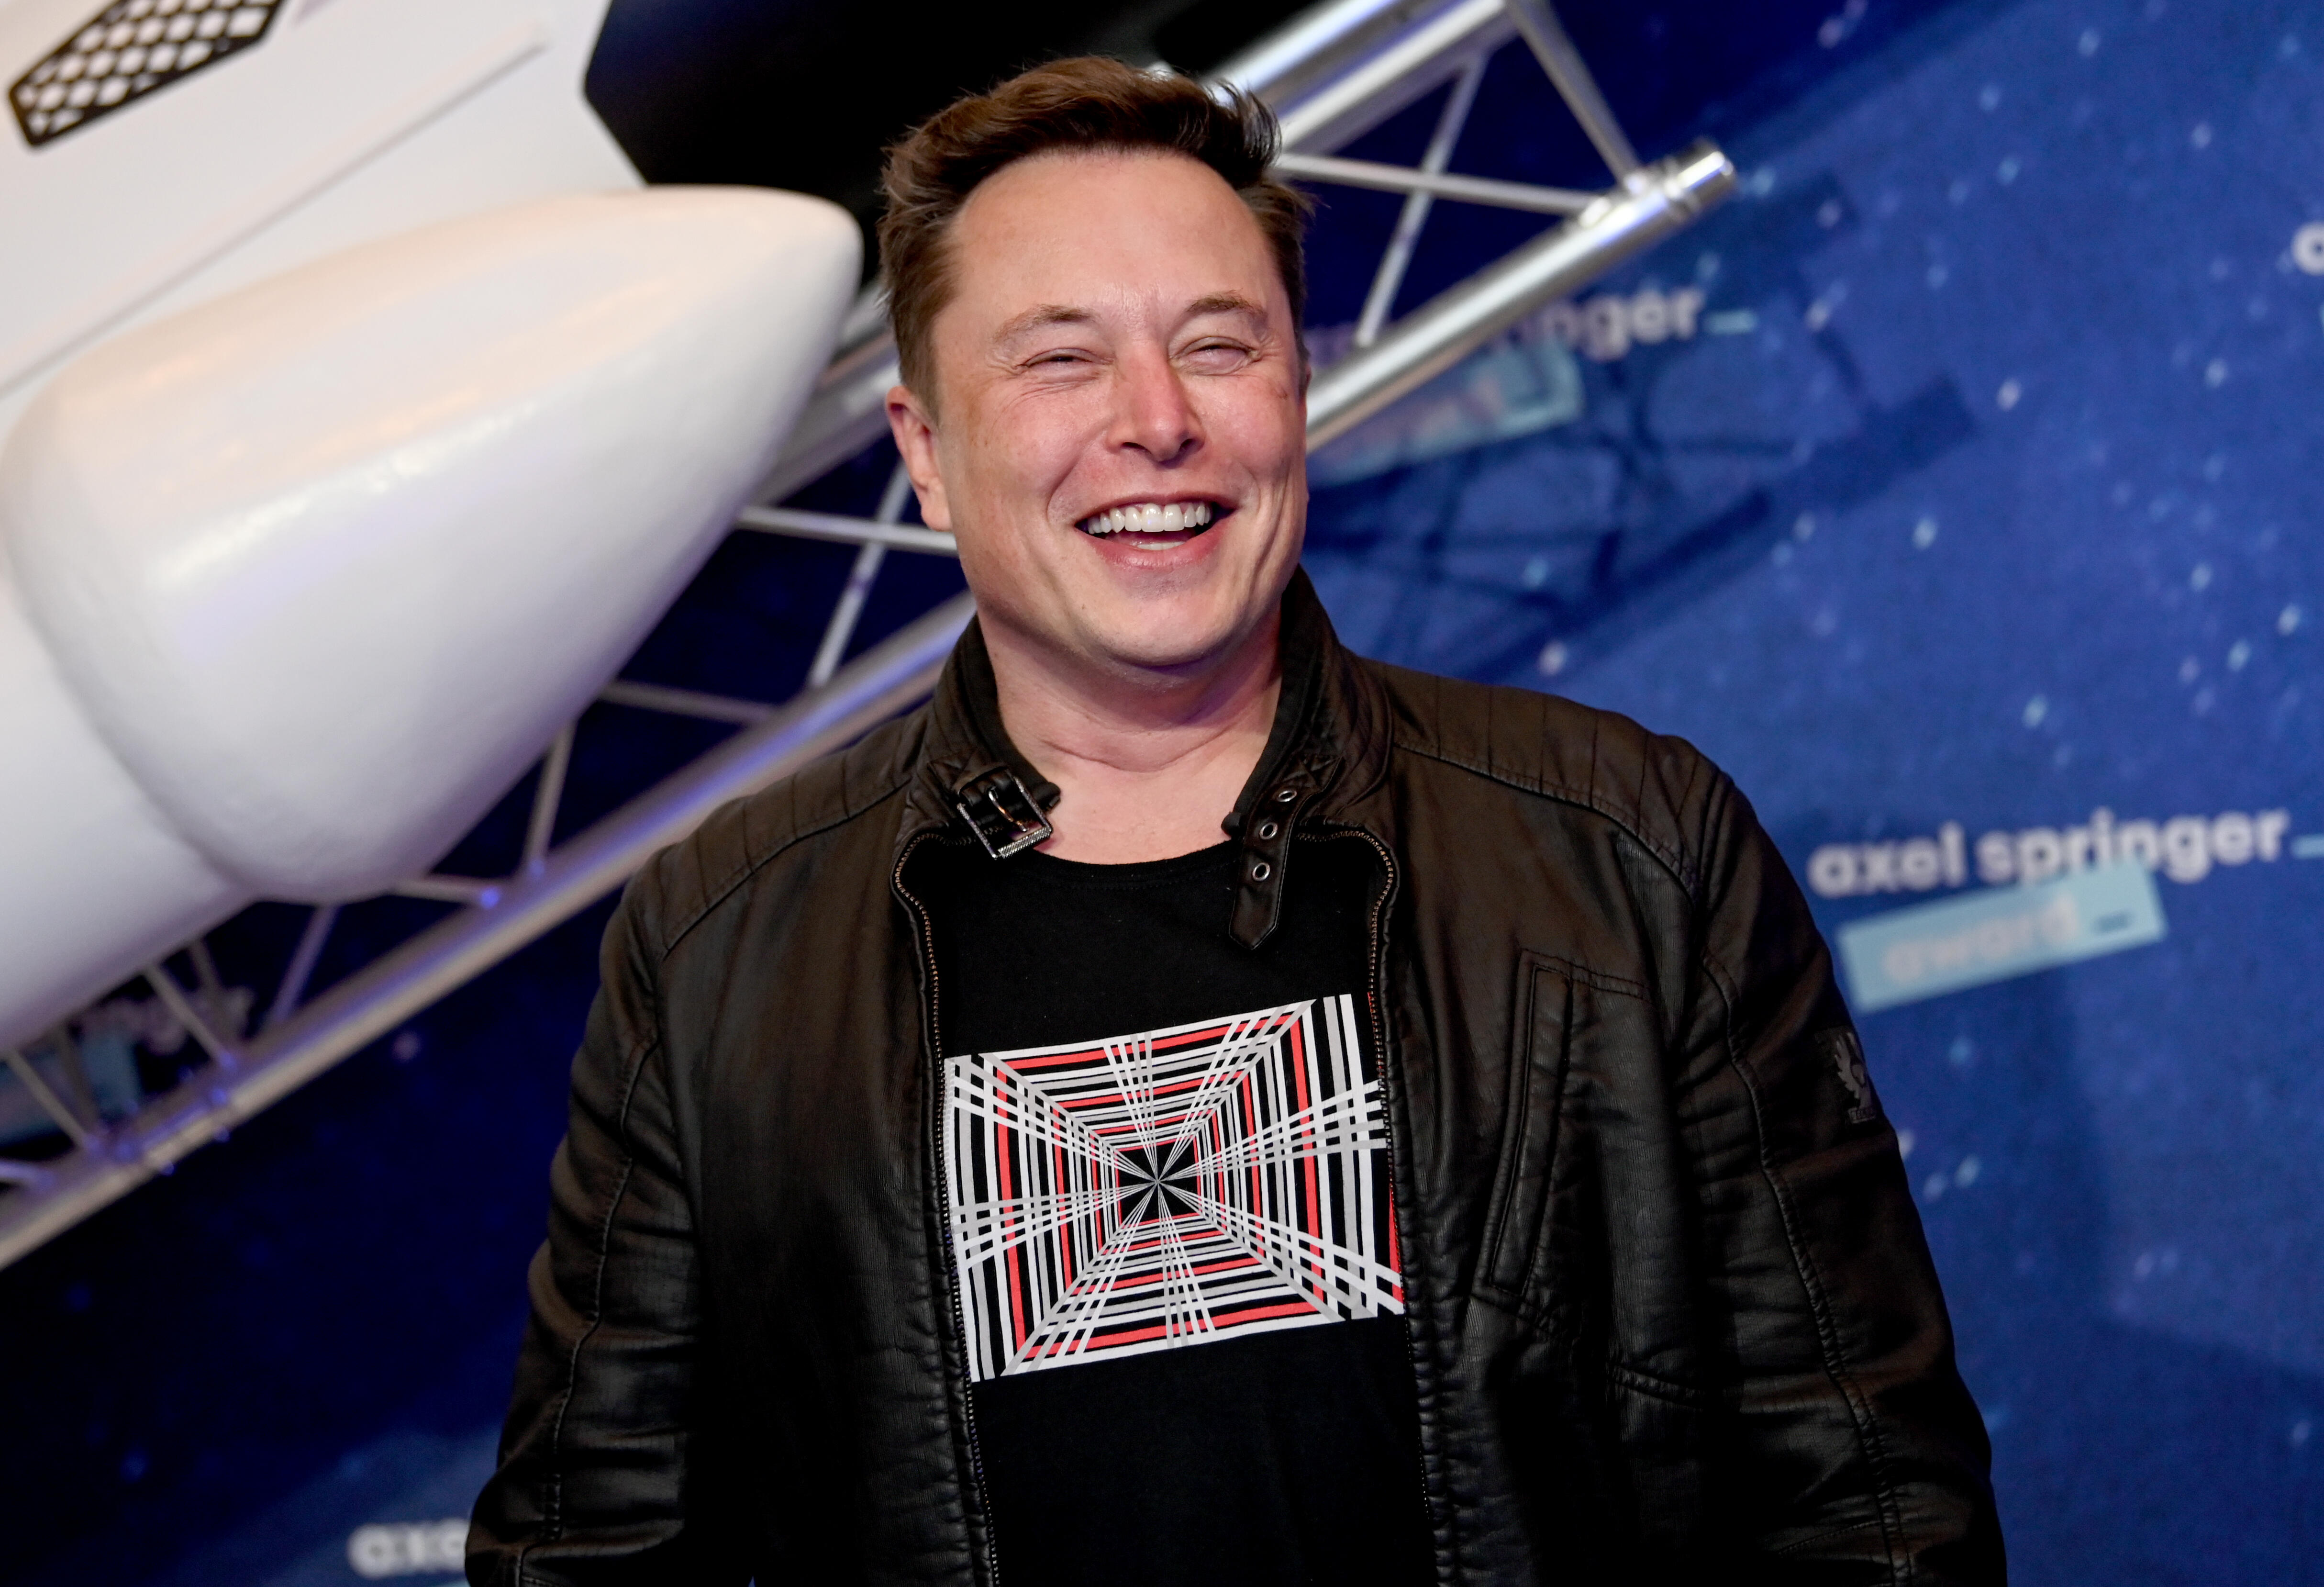 <p>The Tesla and SpaceX CEO reportedly purchased a ticket to space with Virgin Galactic.&nbsp;</p>